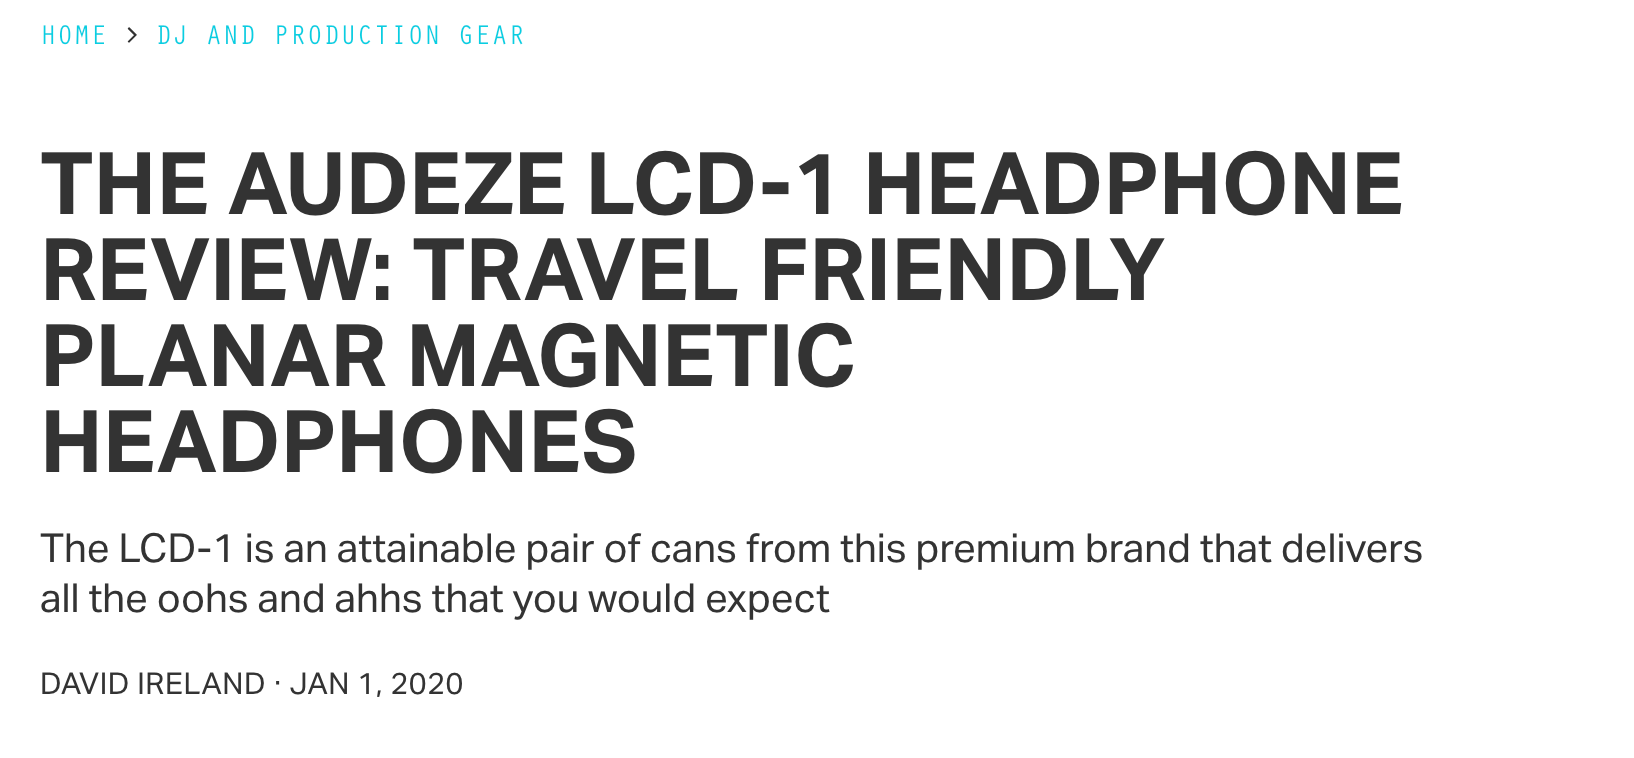 Magnetic Magazine reviews the Audeze LCD-1 Headphone!